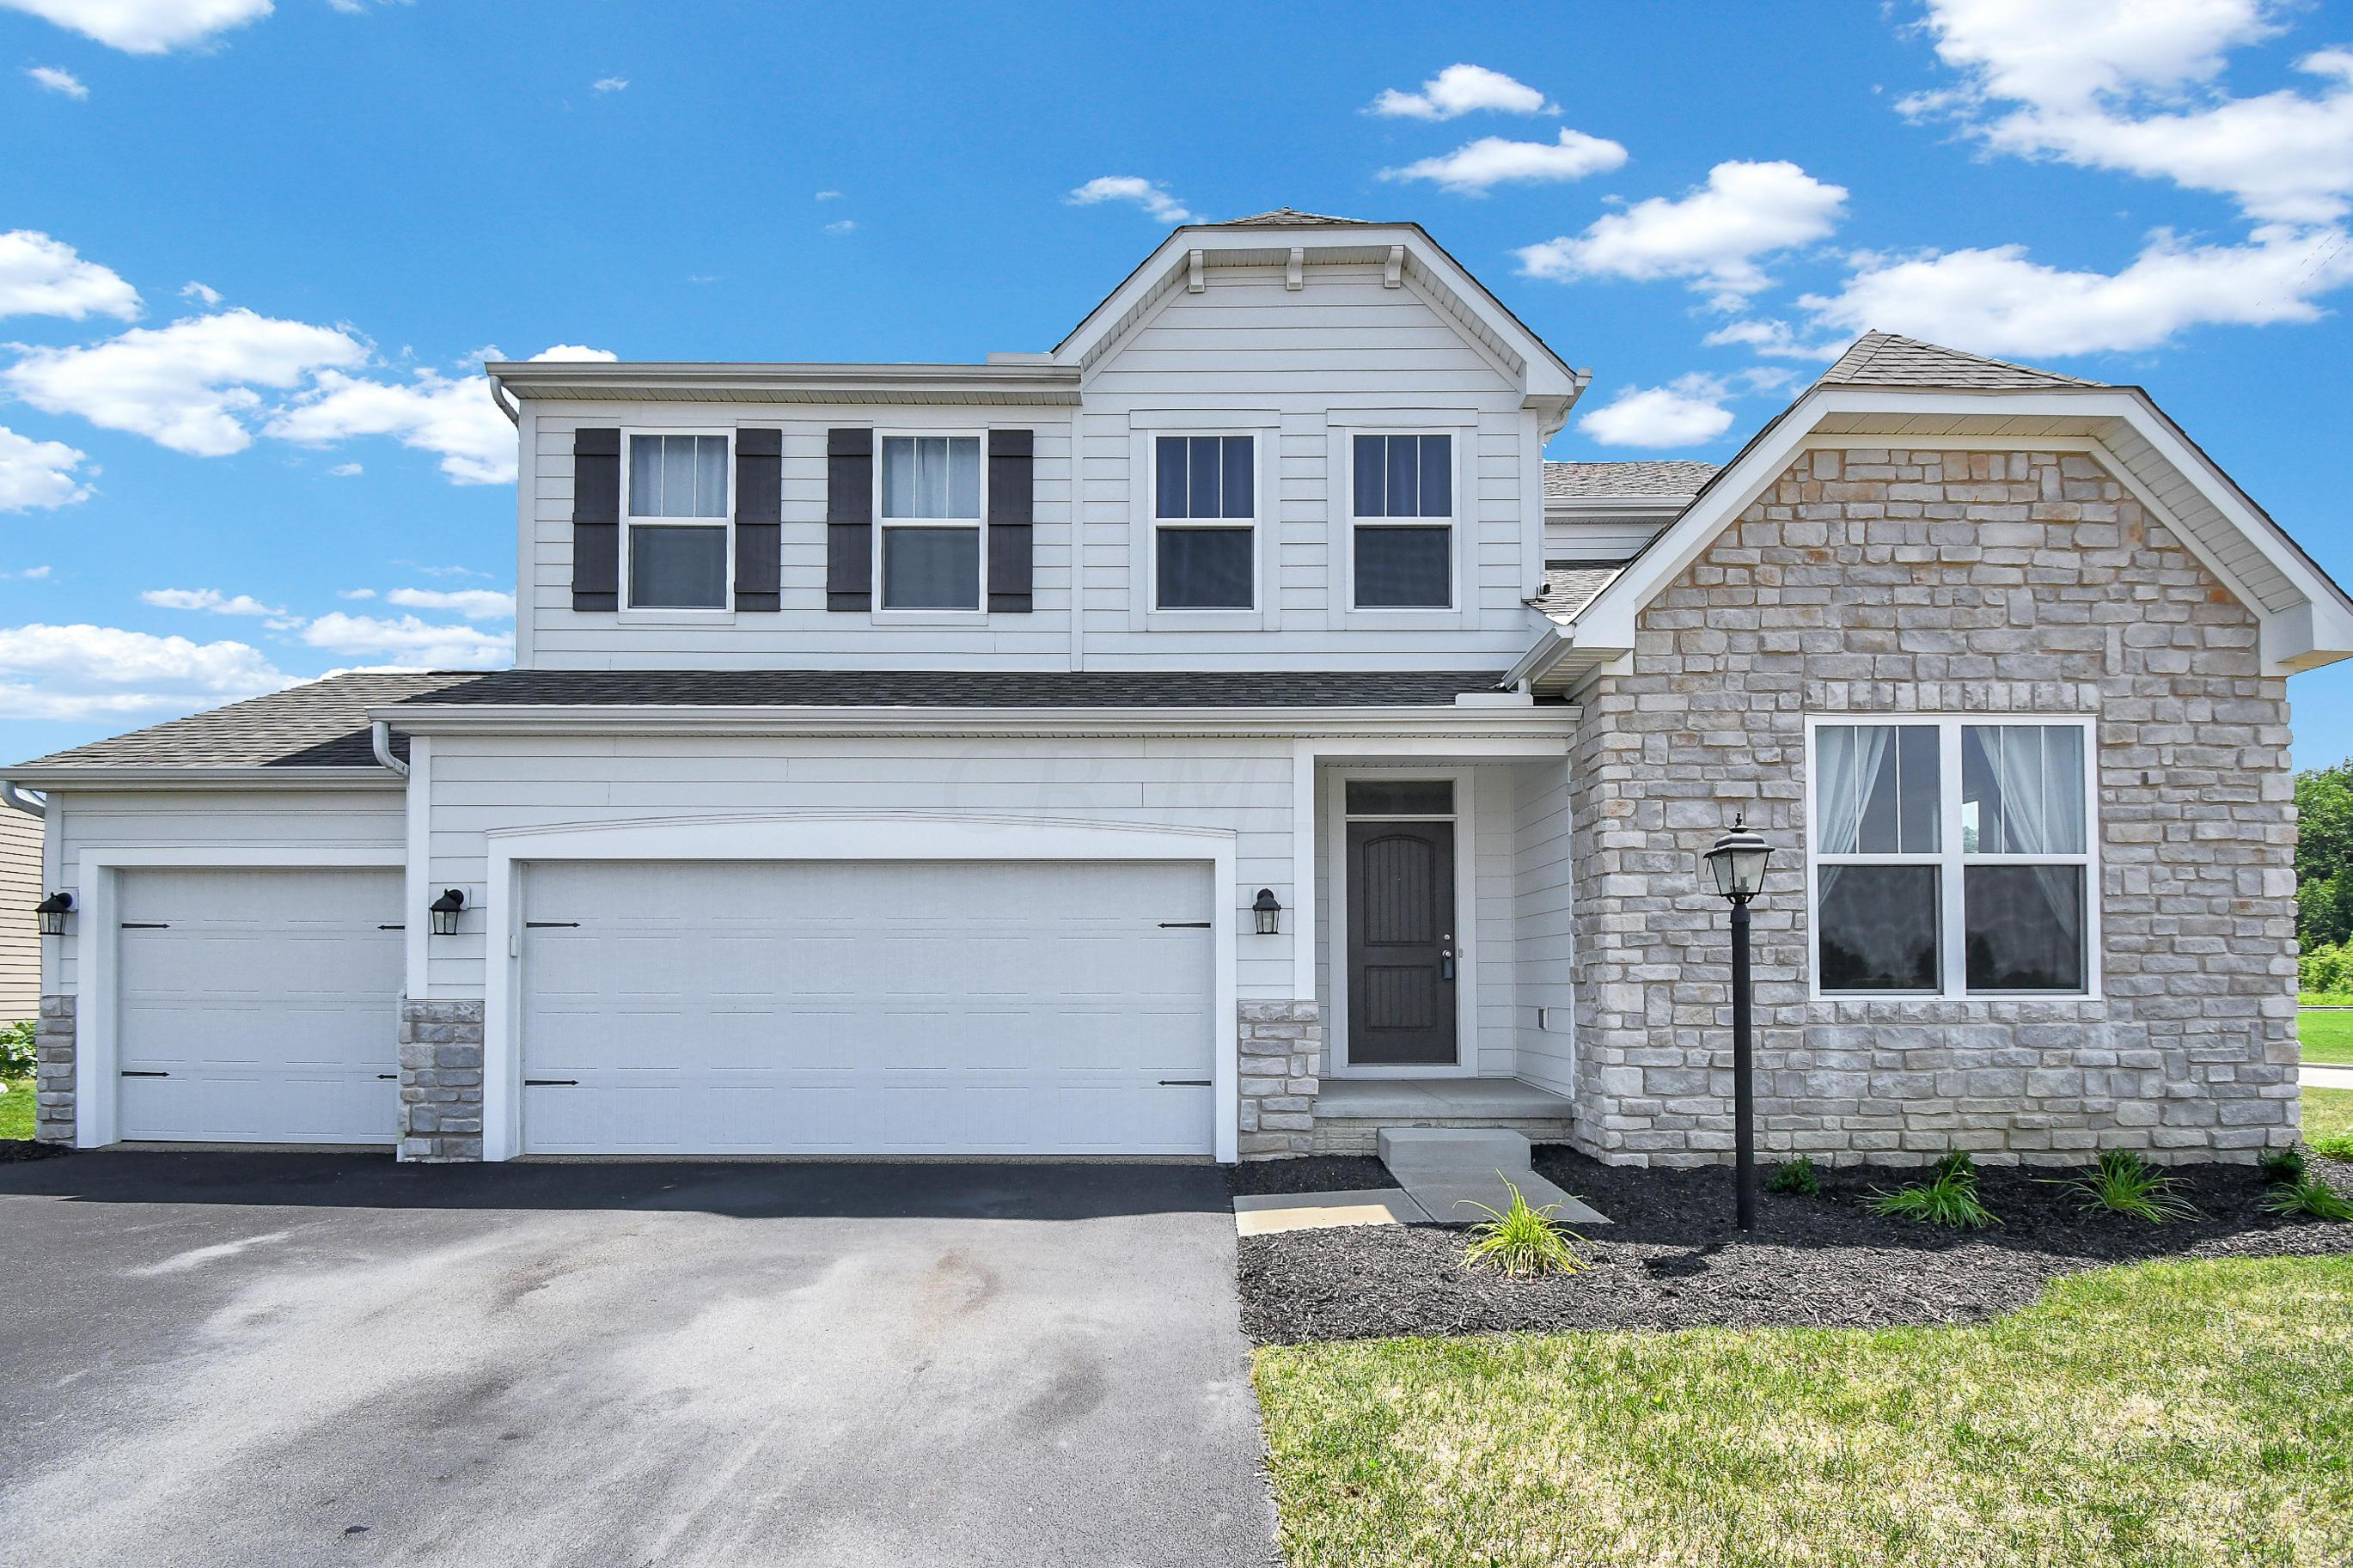 Photo of 7137 Lilly Place, Lewis Center, OH 43035